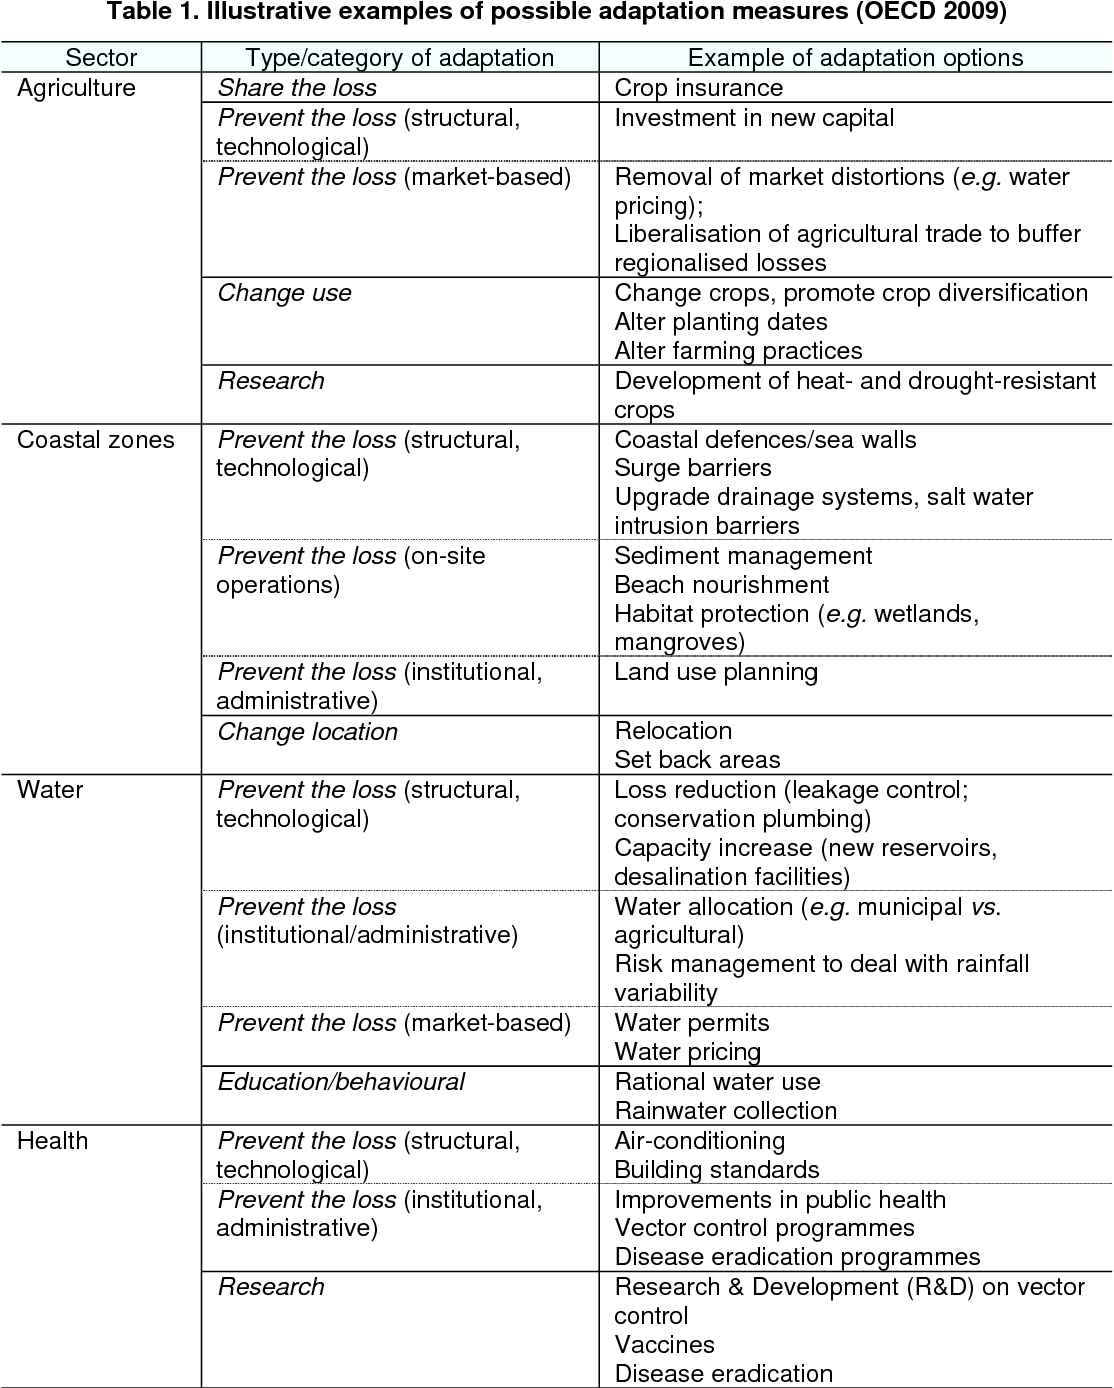 Table 1 from Plan or React? Analysis of Adaptation Costs and